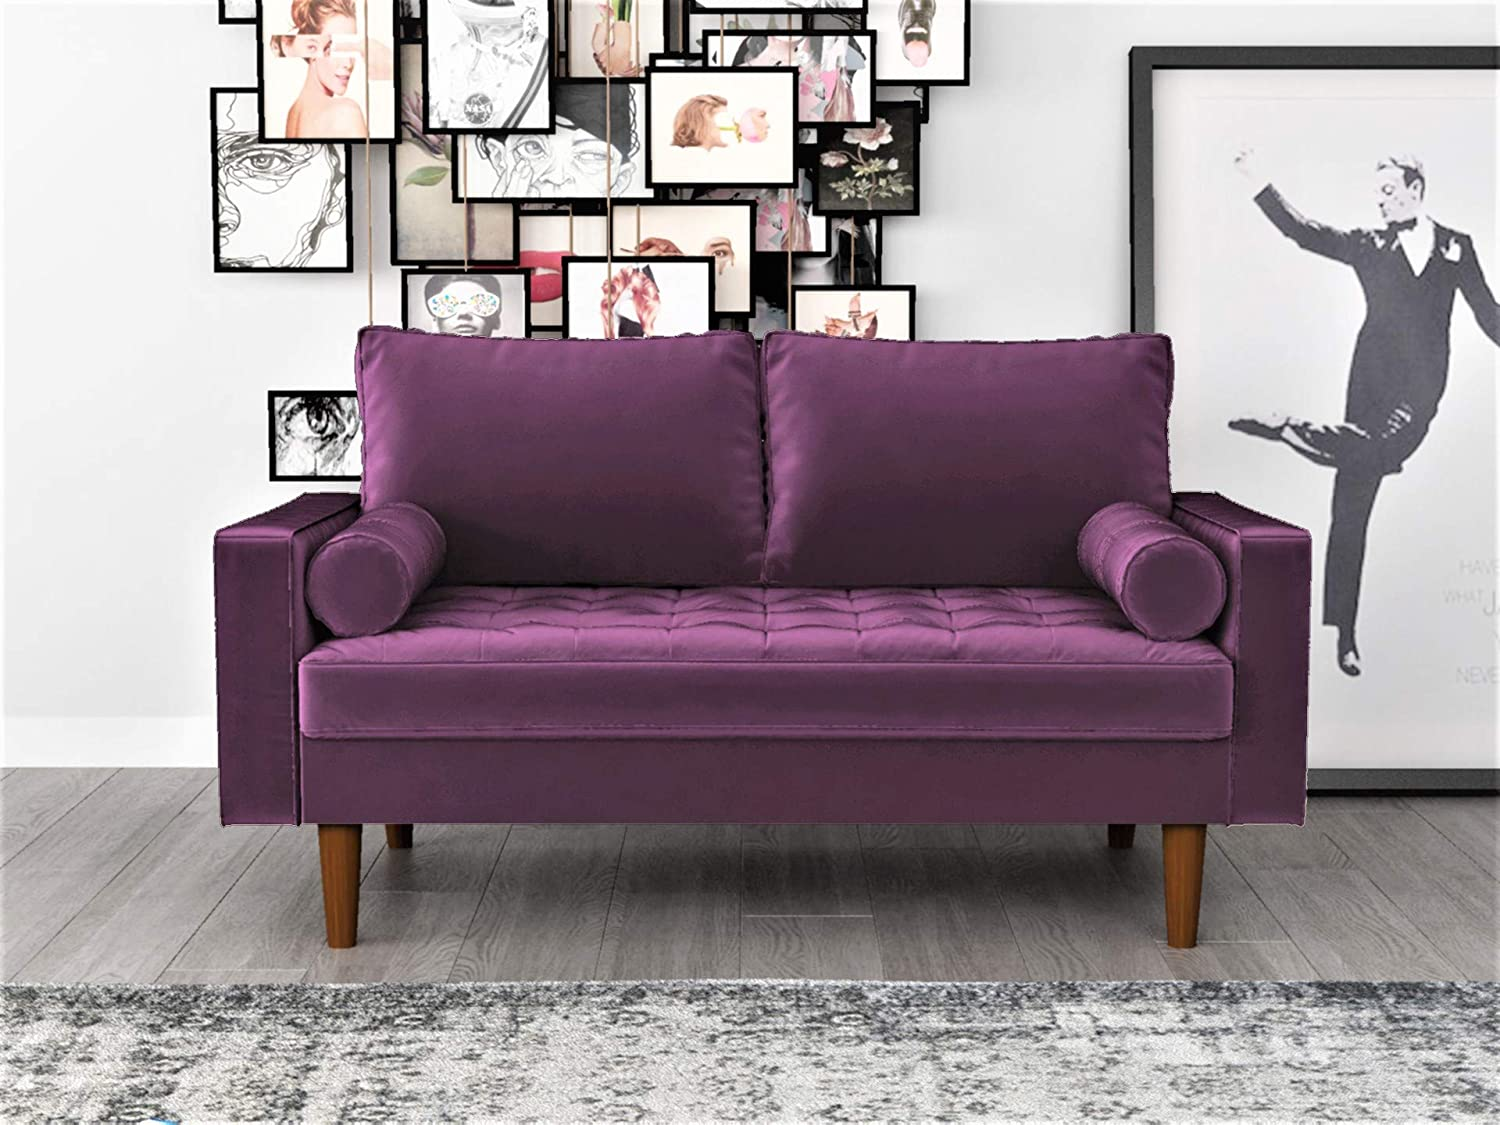 Container Furniture Direct Mid Century Modern Velvet Upholstered Button Tufted Living Room Sofa 2 Piece Set Eggplant